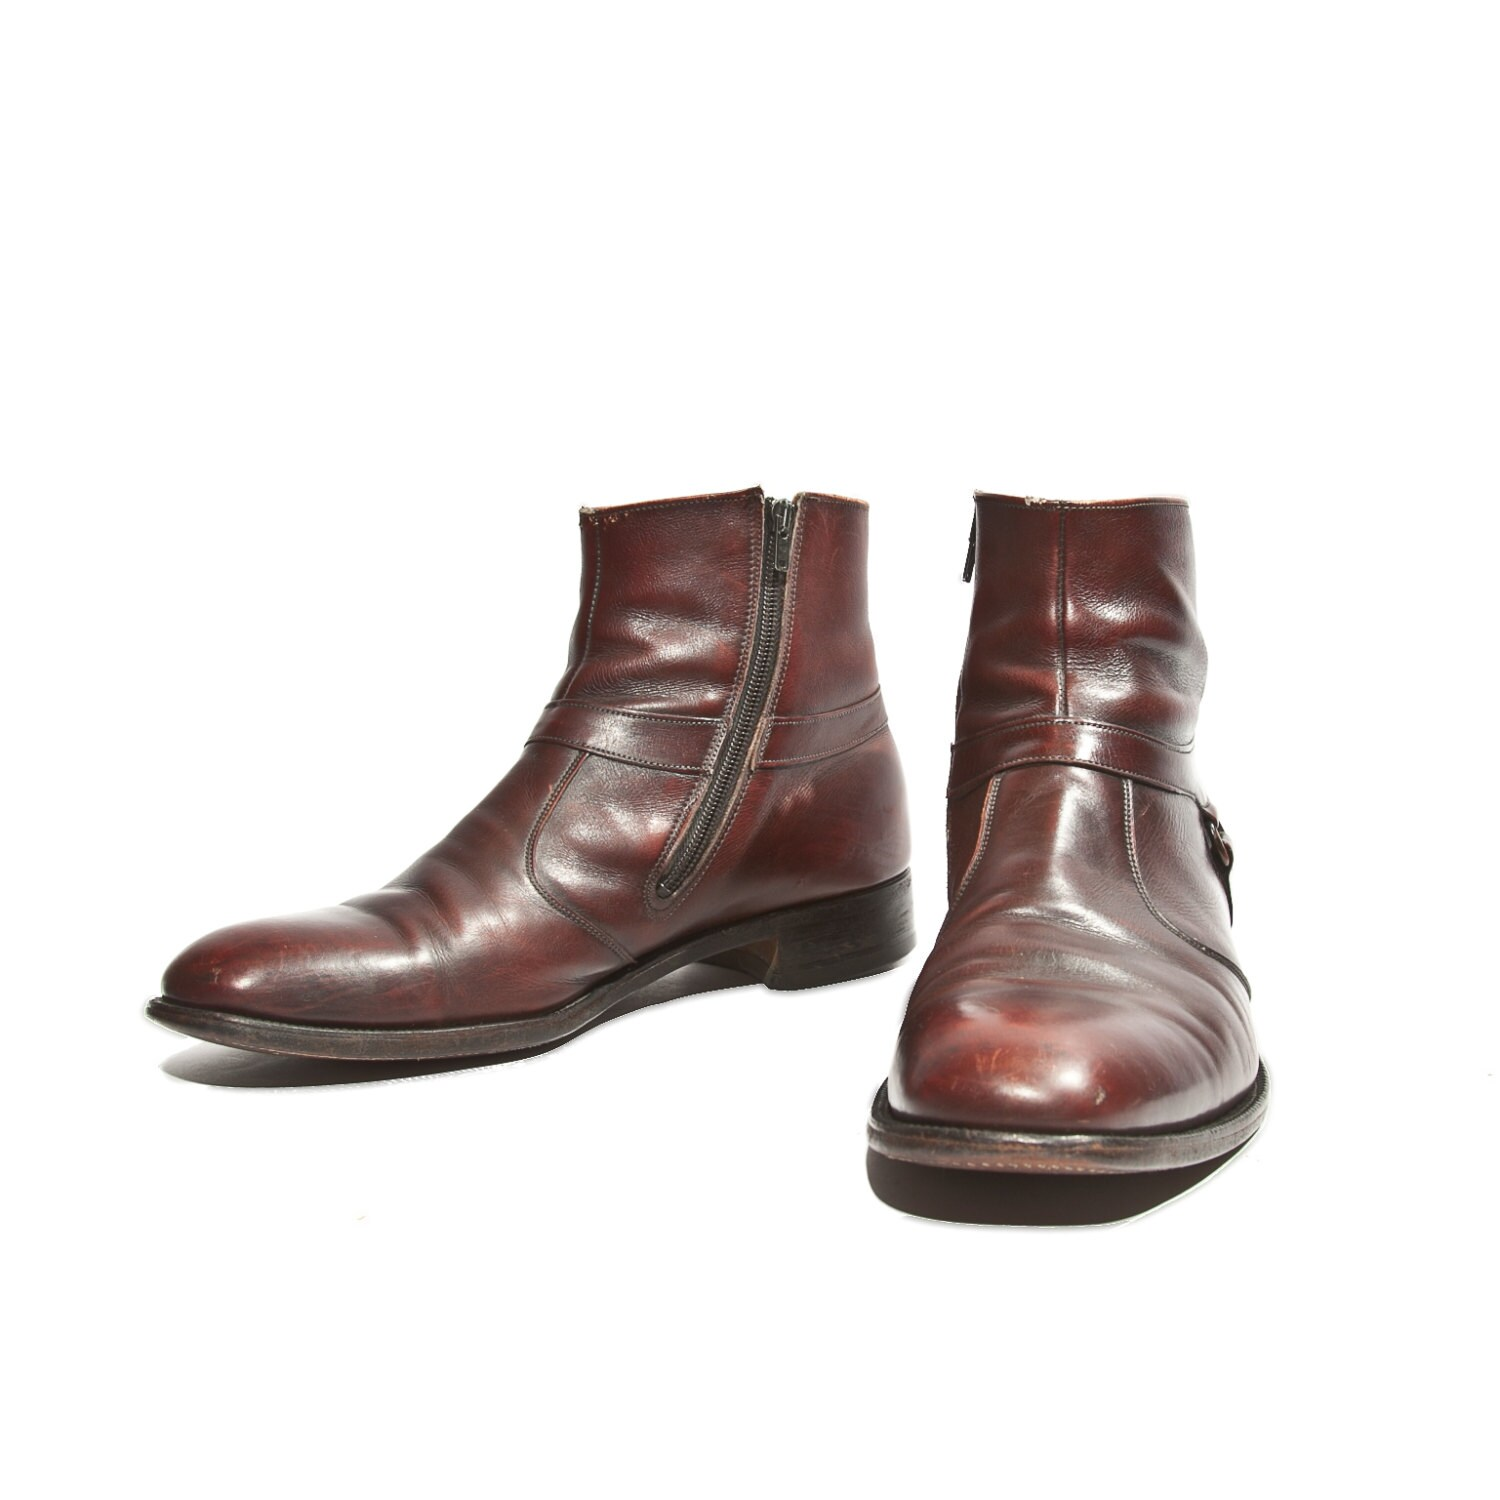 Cordovan Ankle Boots Zipper Sides Beatle Boot By Knapp S